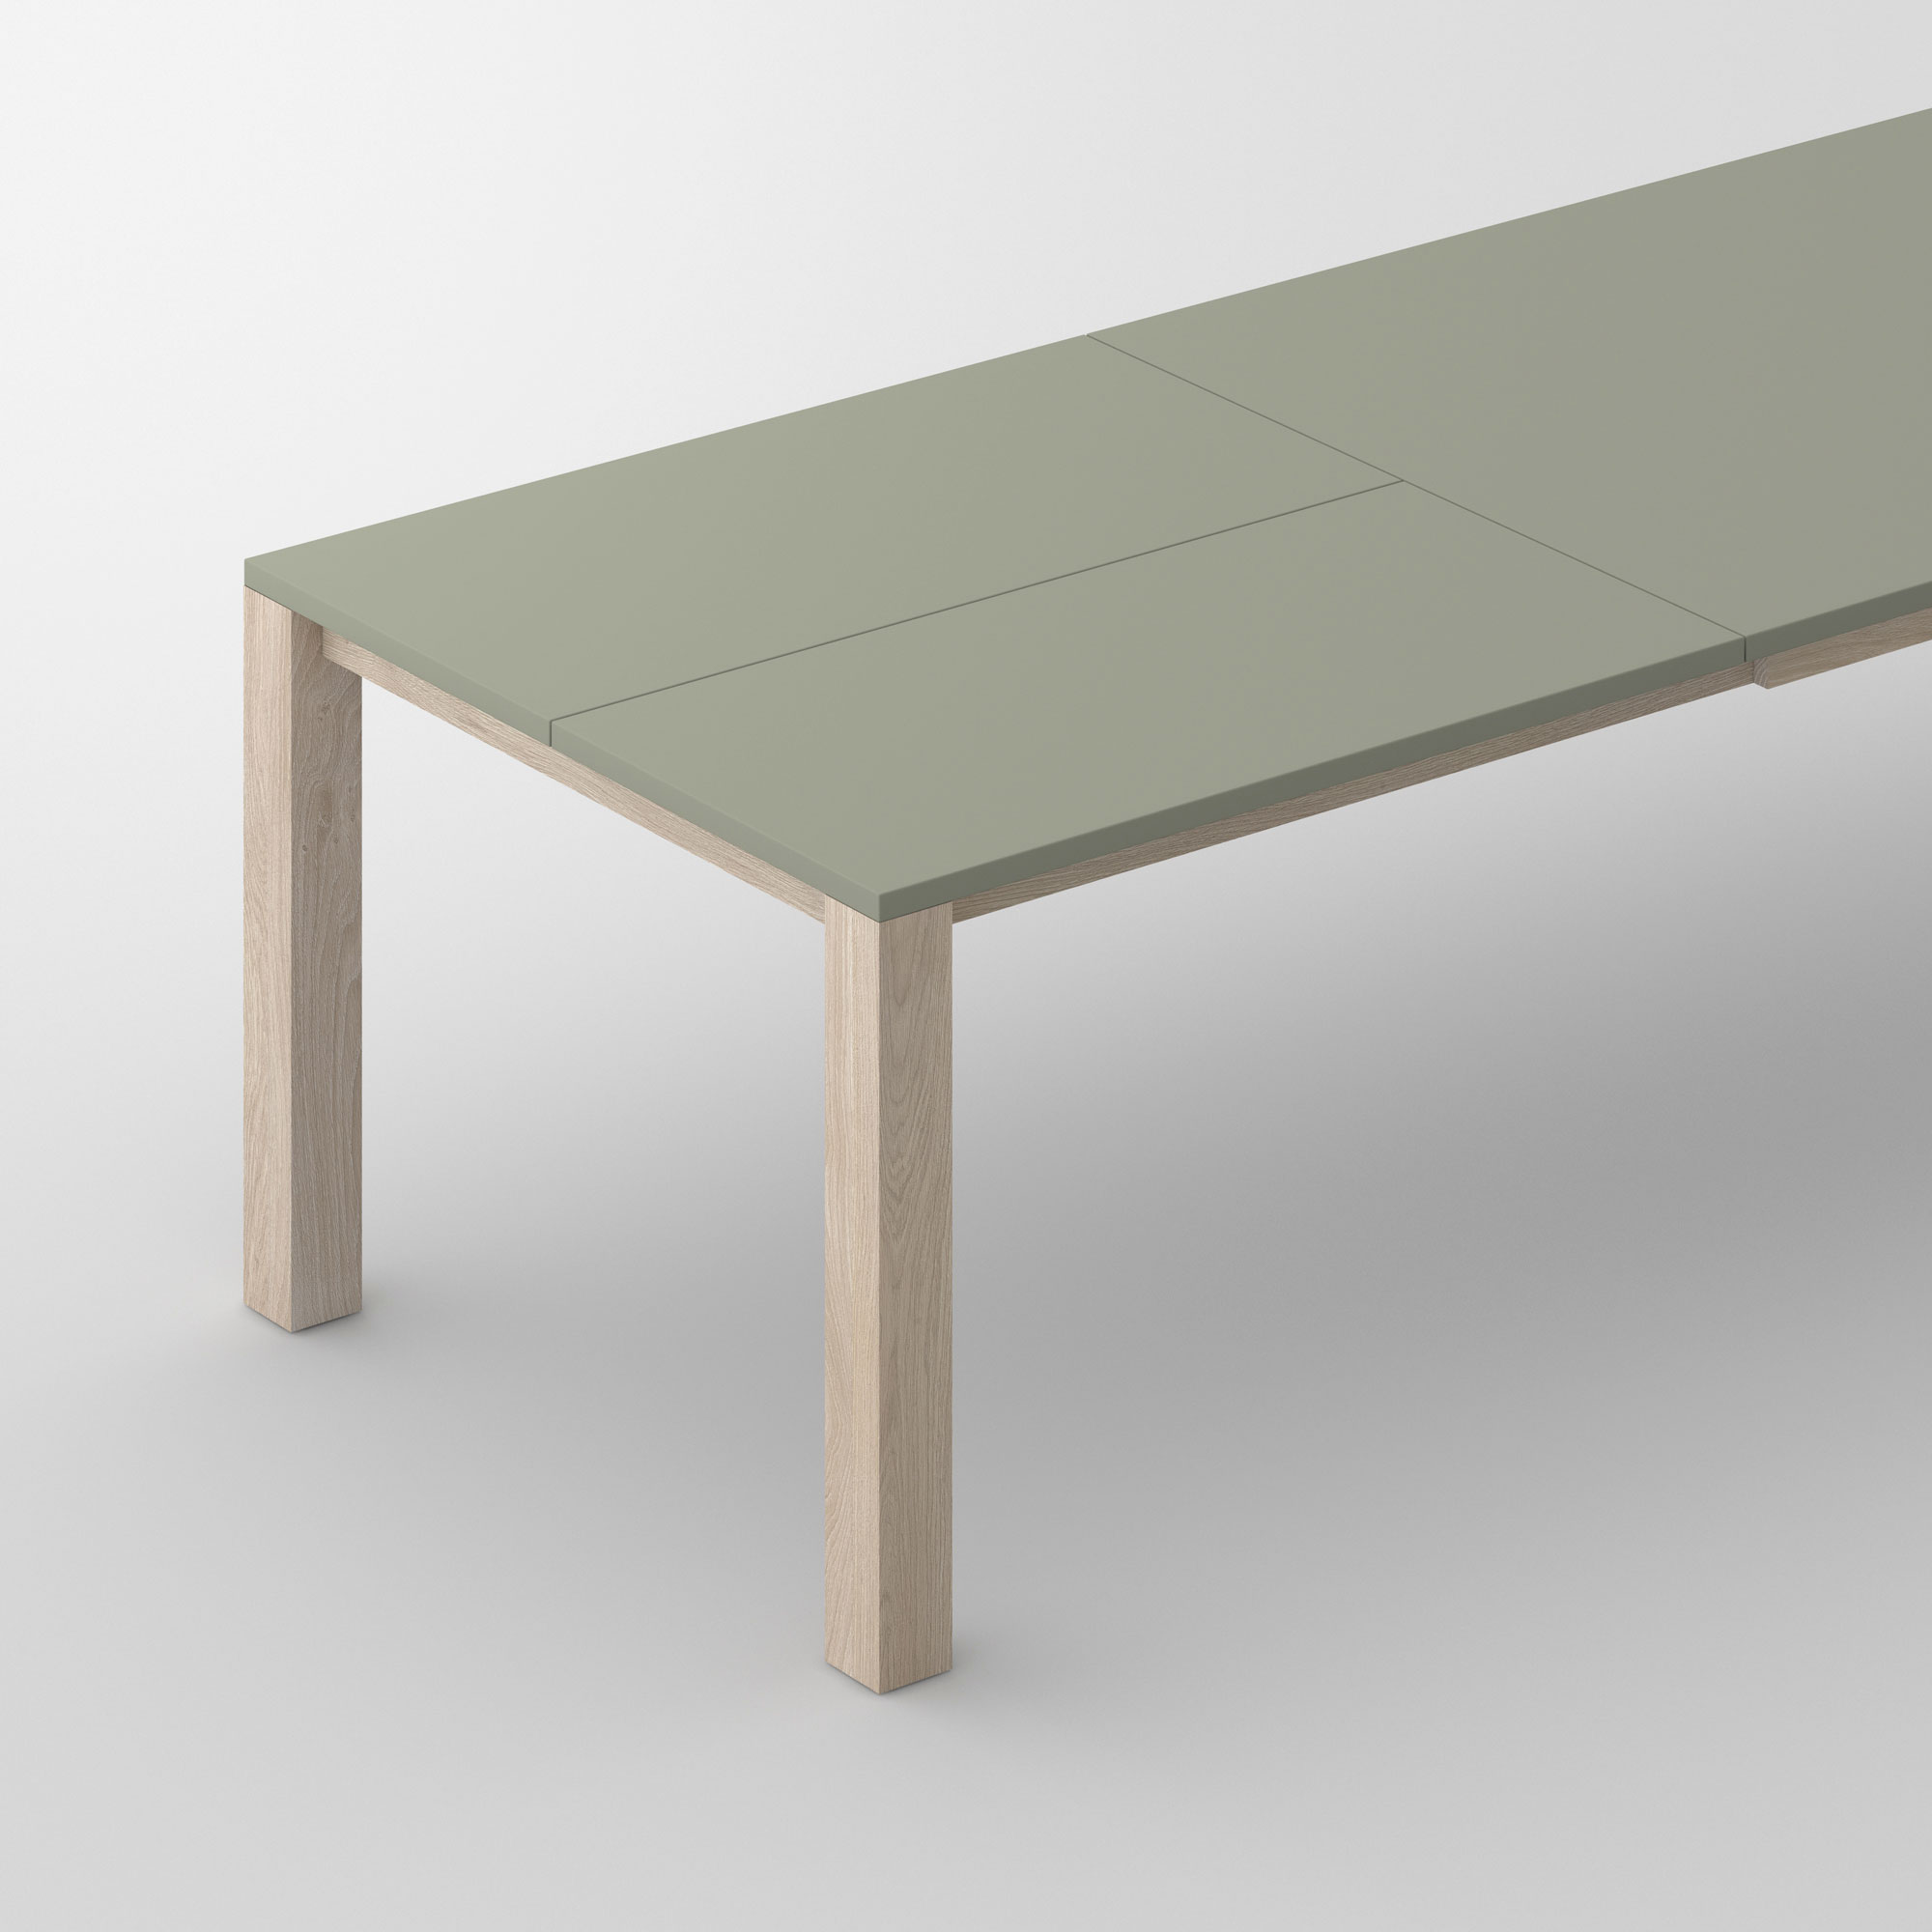 Extensible Linoleum Wood Table VARIUS BUTTERFLY LINO cam1 custom made in solid wood by vitamin design